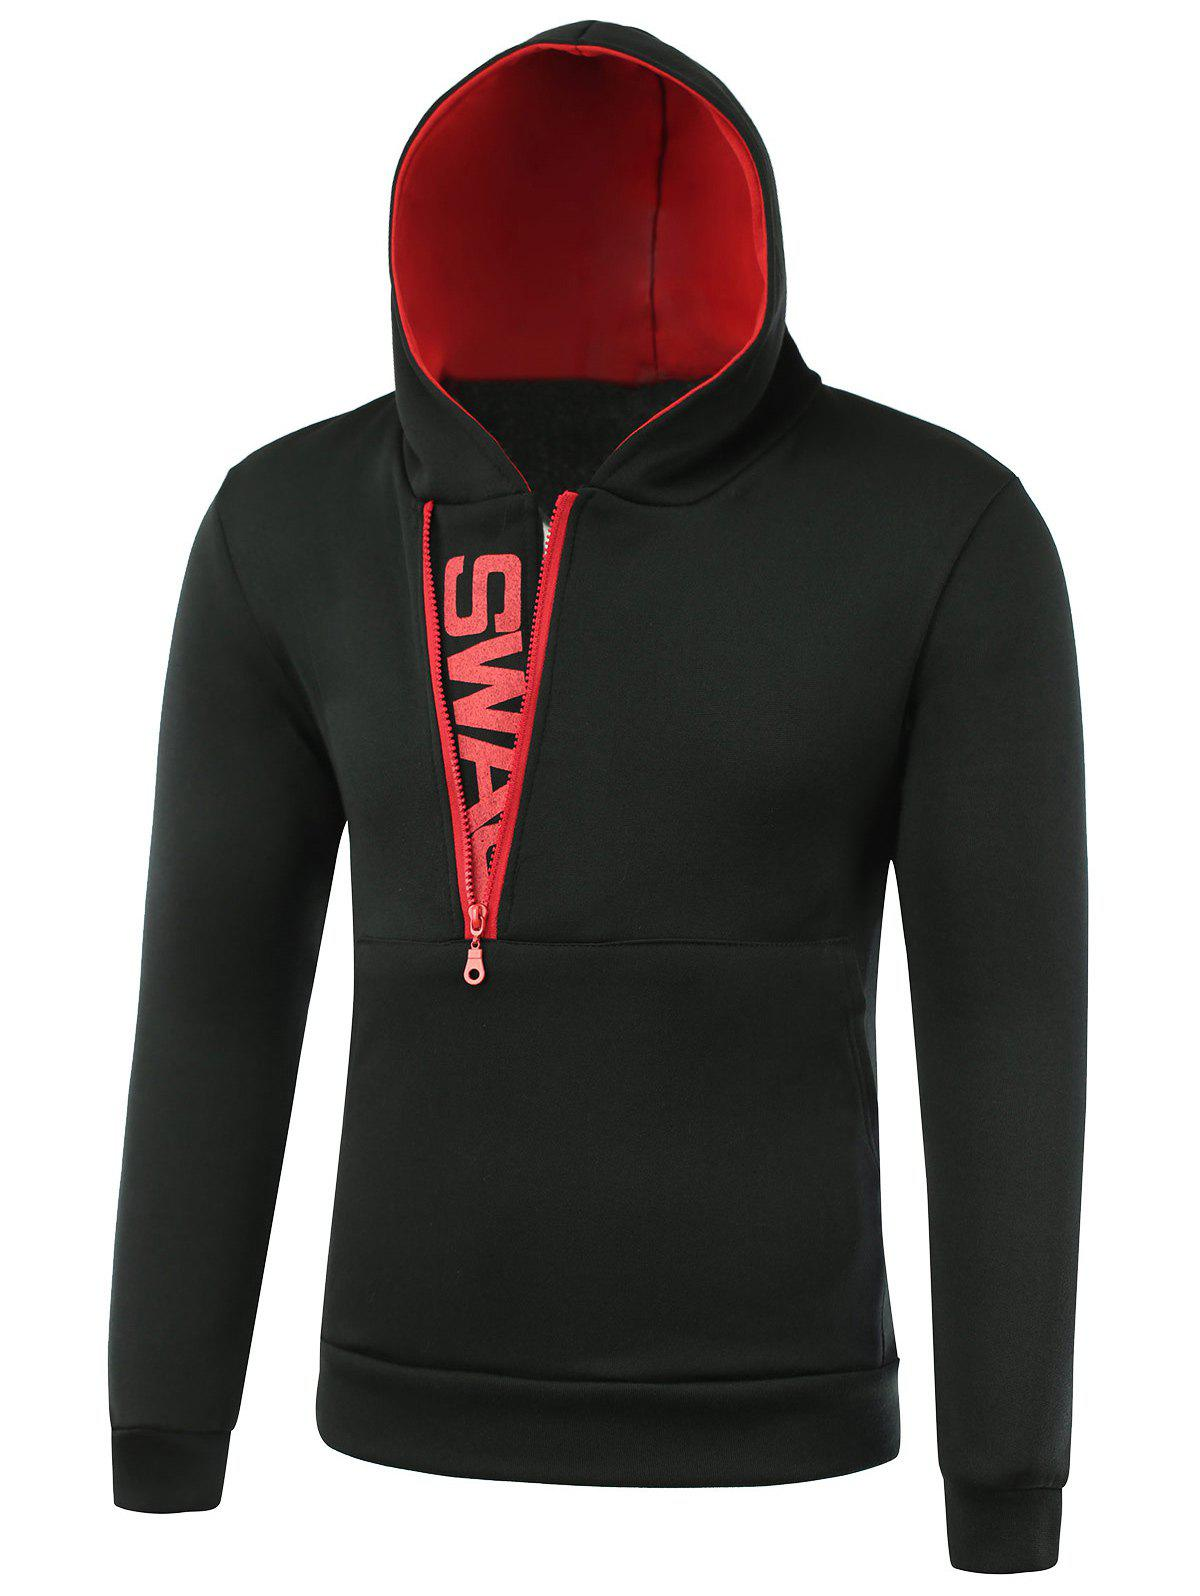 IZZUMI Pocket Front Long Sleeve Side Half-Zip Up Hoodie - RED / BLACK 2XL